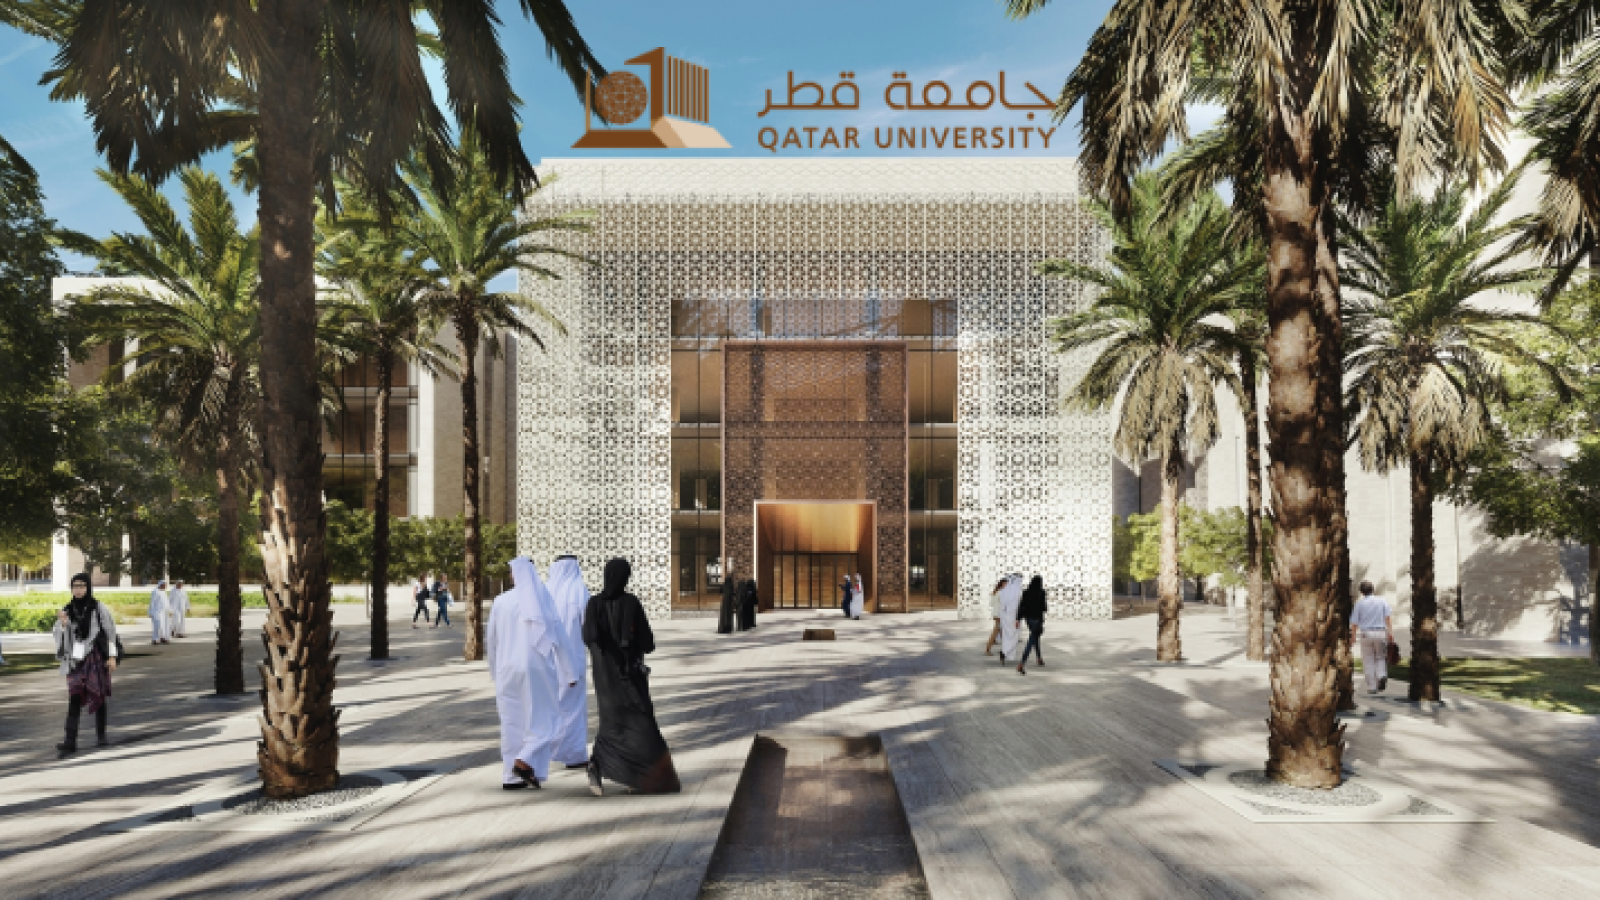 Over 4,200 students accepted into Qatar University this fall